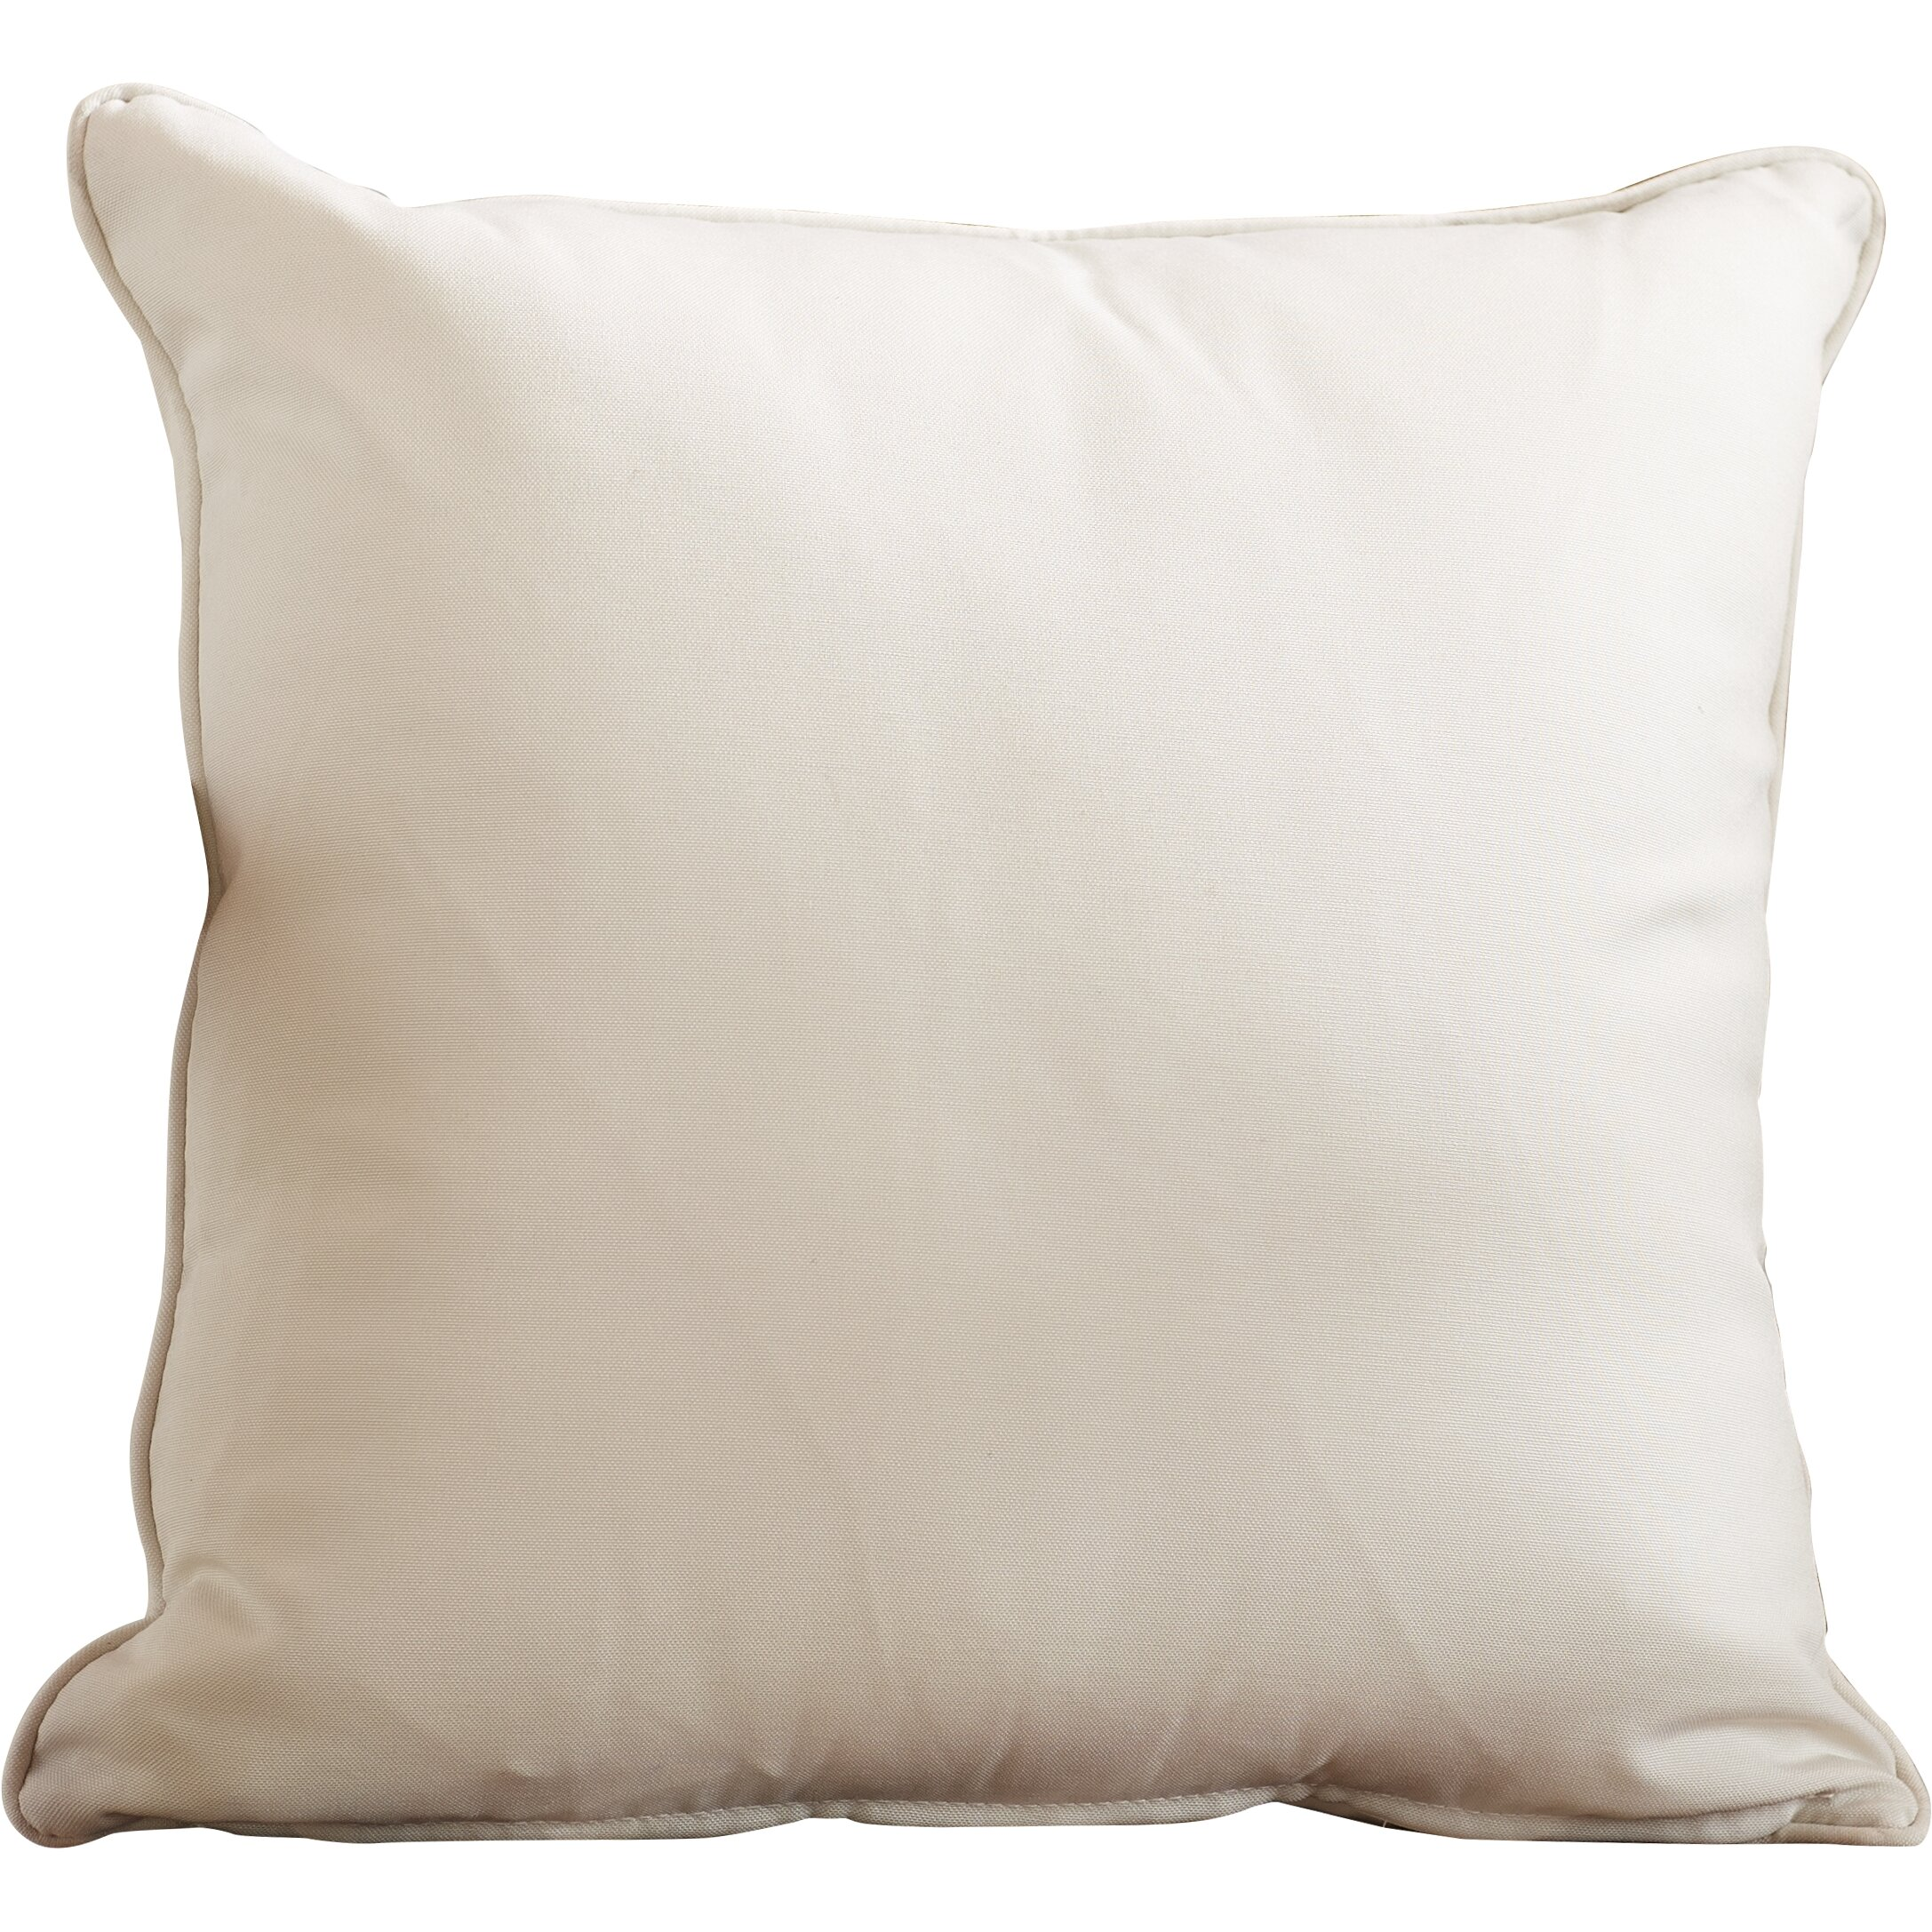 Decorative Pillow Wayfair : Wayfair Custom Outdoor Cushions Outdoor Throw Pillow & Reviews Wayfair.ca